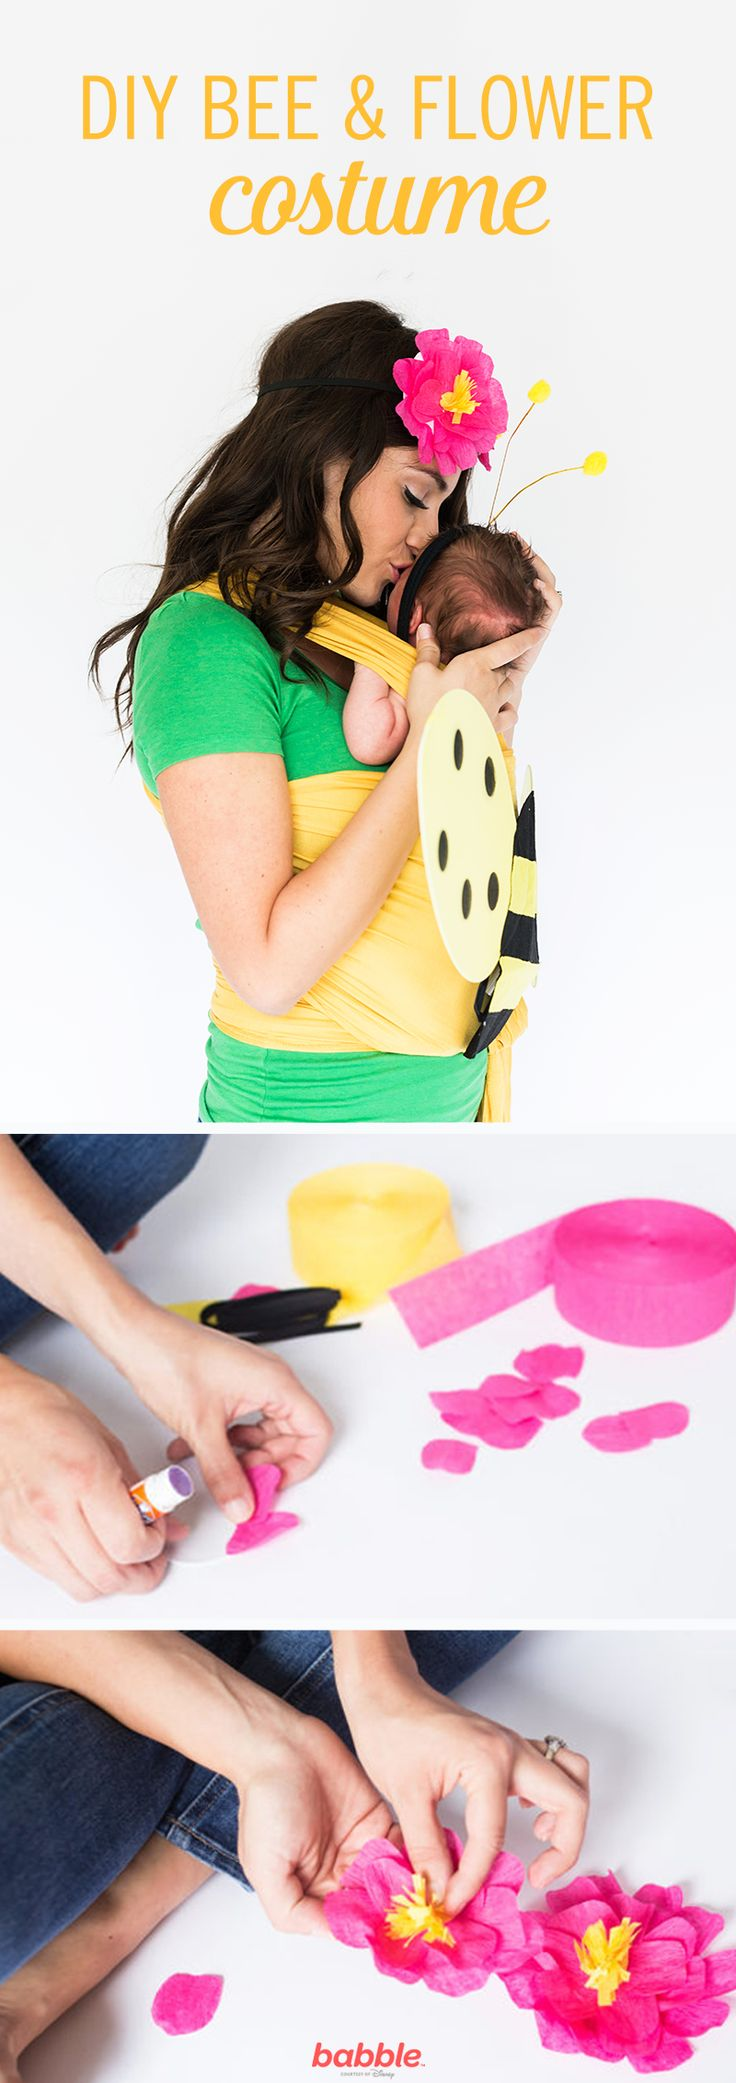 A homemade Halloween is always fun, but shortcuts sound even more appealing. Put a DIY spin on store-bought costumes for a fantastic makeover. This baby-wearing duo is so sweet! To create the Baby Bee and Mama Flower Costume, simply add a yellow baby carrier to the bee costume and create a flower headband with crepe paper or streamers.